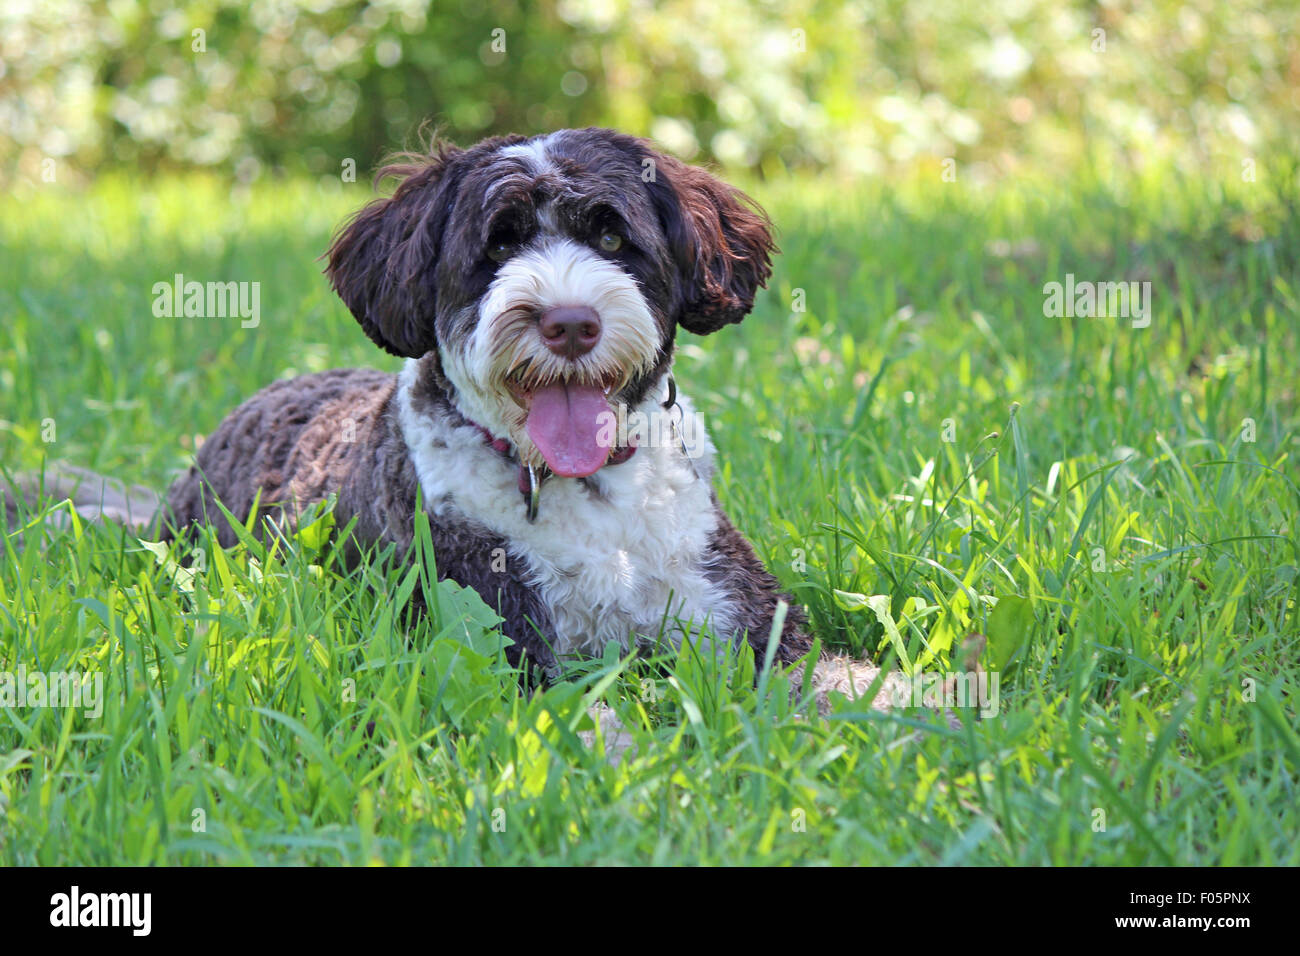 A cute brown and white Portuguese Water Dog lying in a field on a hot day in summer panting - Stock Image